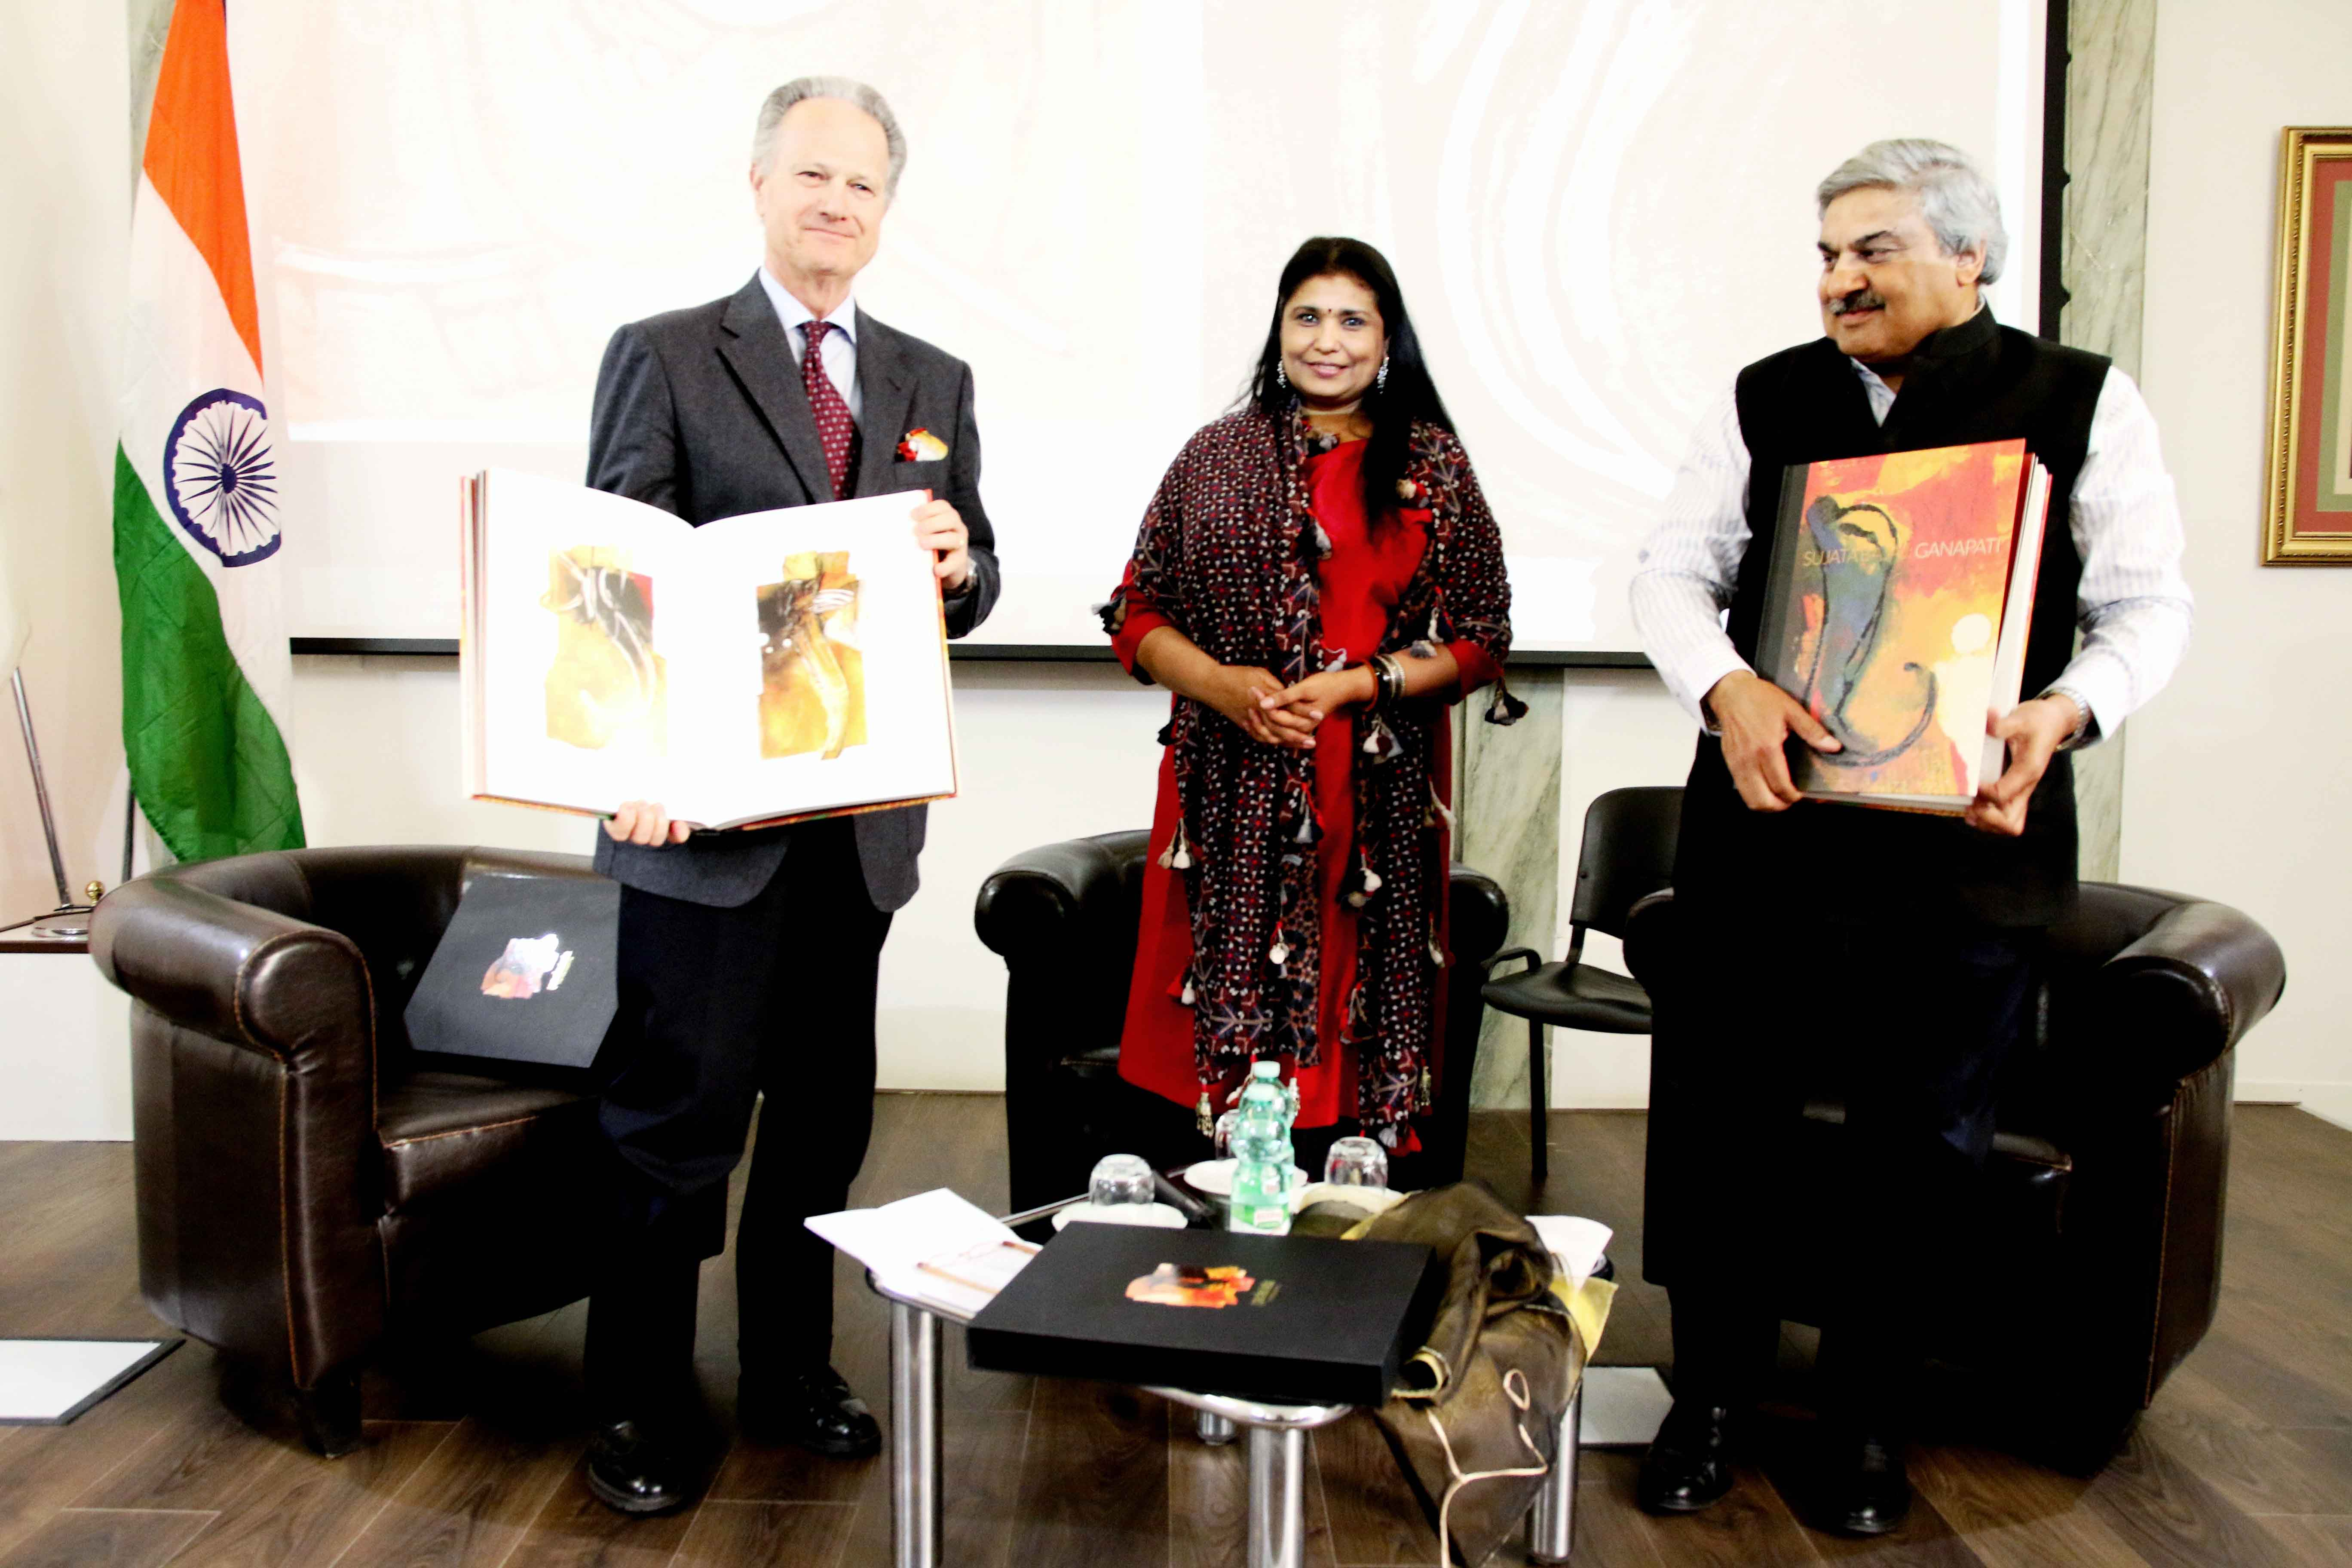 From left to right: Professor Francesco Buranelli, Inspector of the Pontifical Commission for Sacred Archeology of Vatican and Secretary of Commission for Cultural Heritage of the Church, Sujata Bajaj and Indian Ambassador Anil Wadhwa